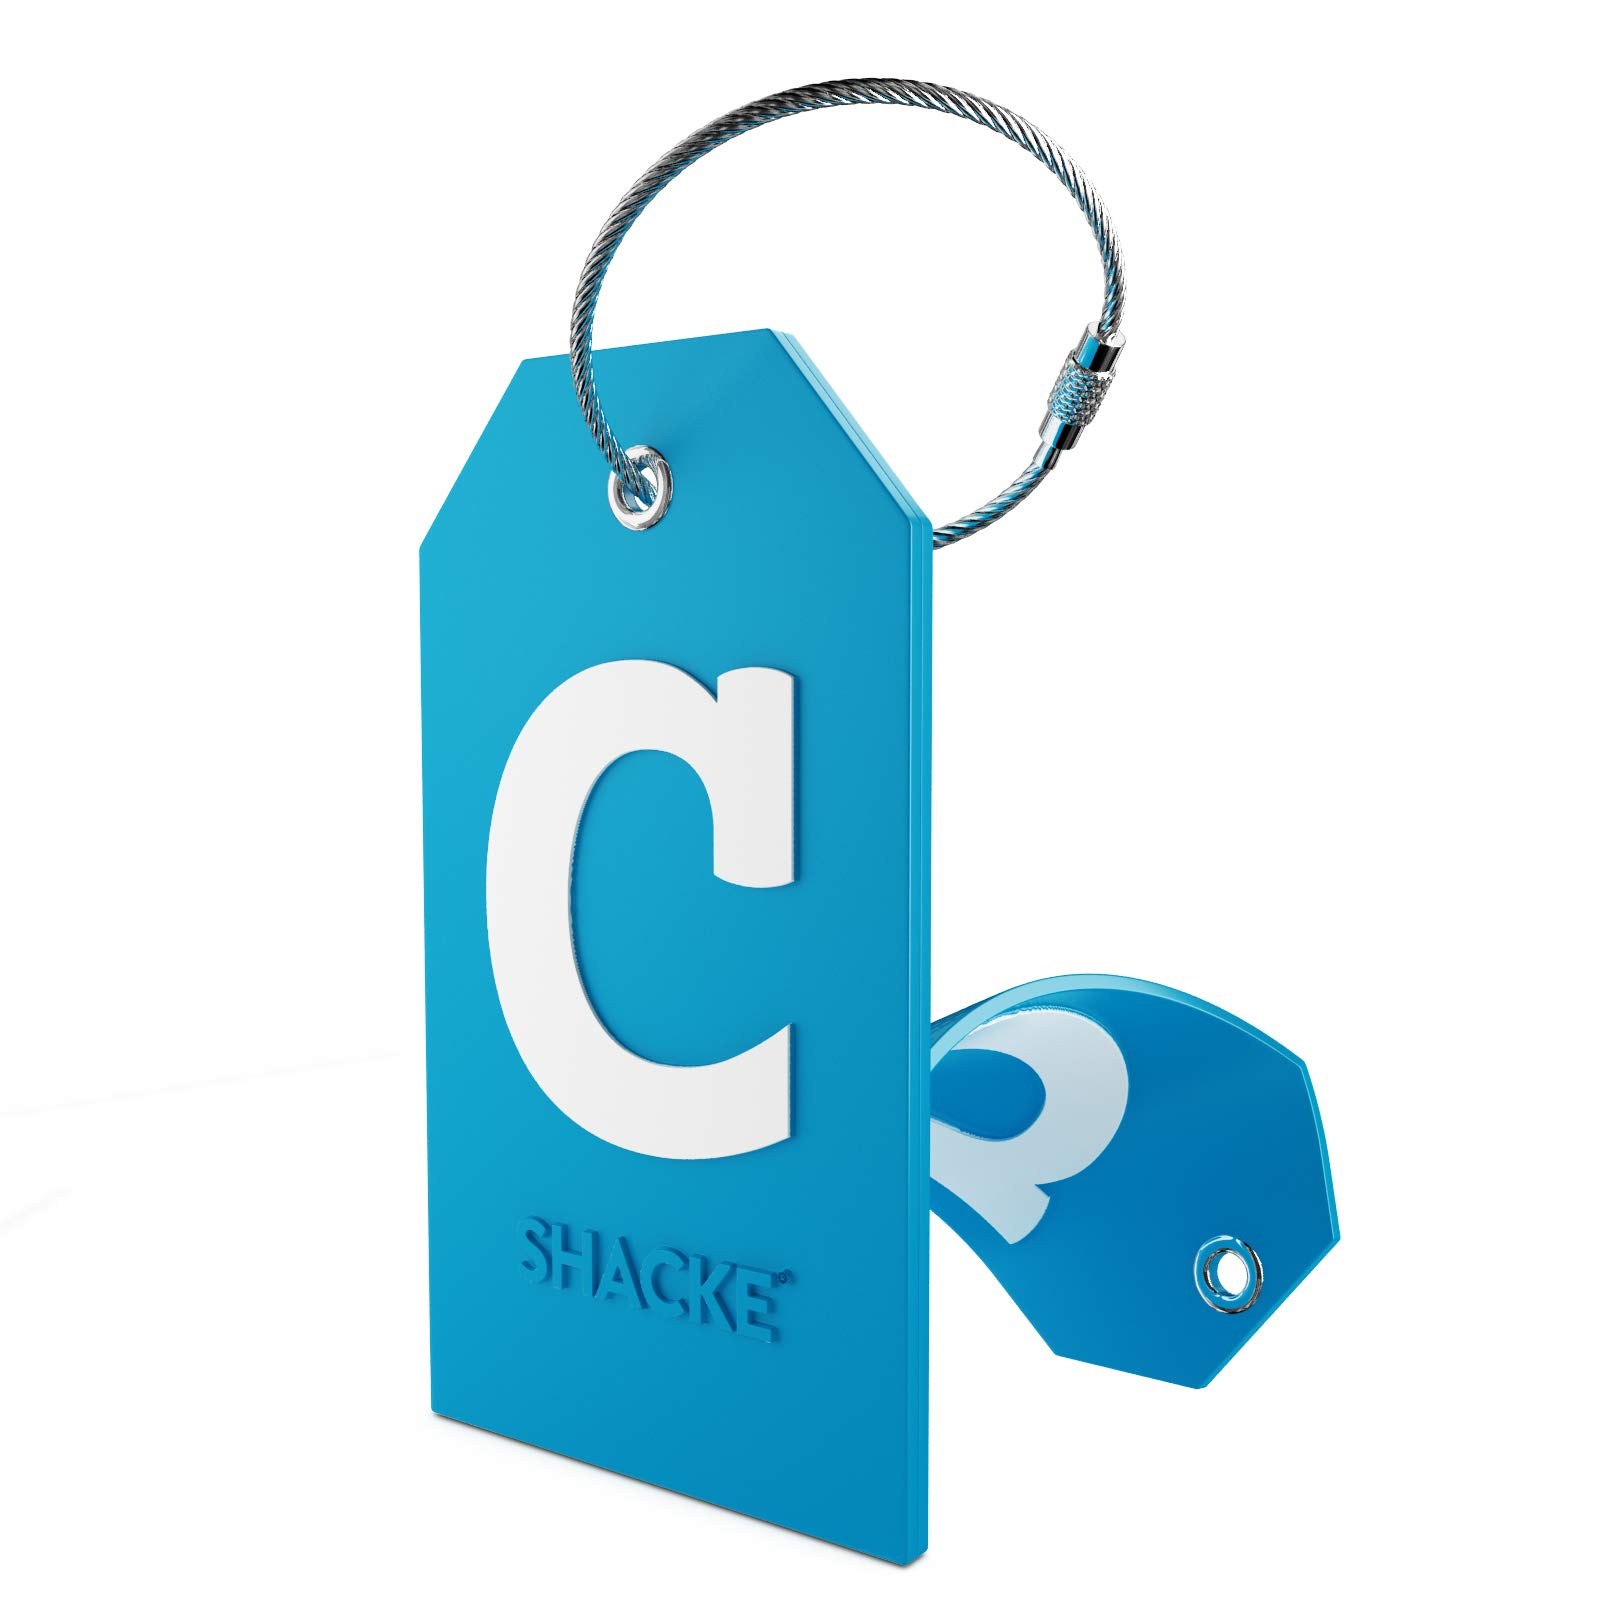 Initial Luggage Tag with Full Privacy Cover and Stainless Steel Loop (Aqua Teal)